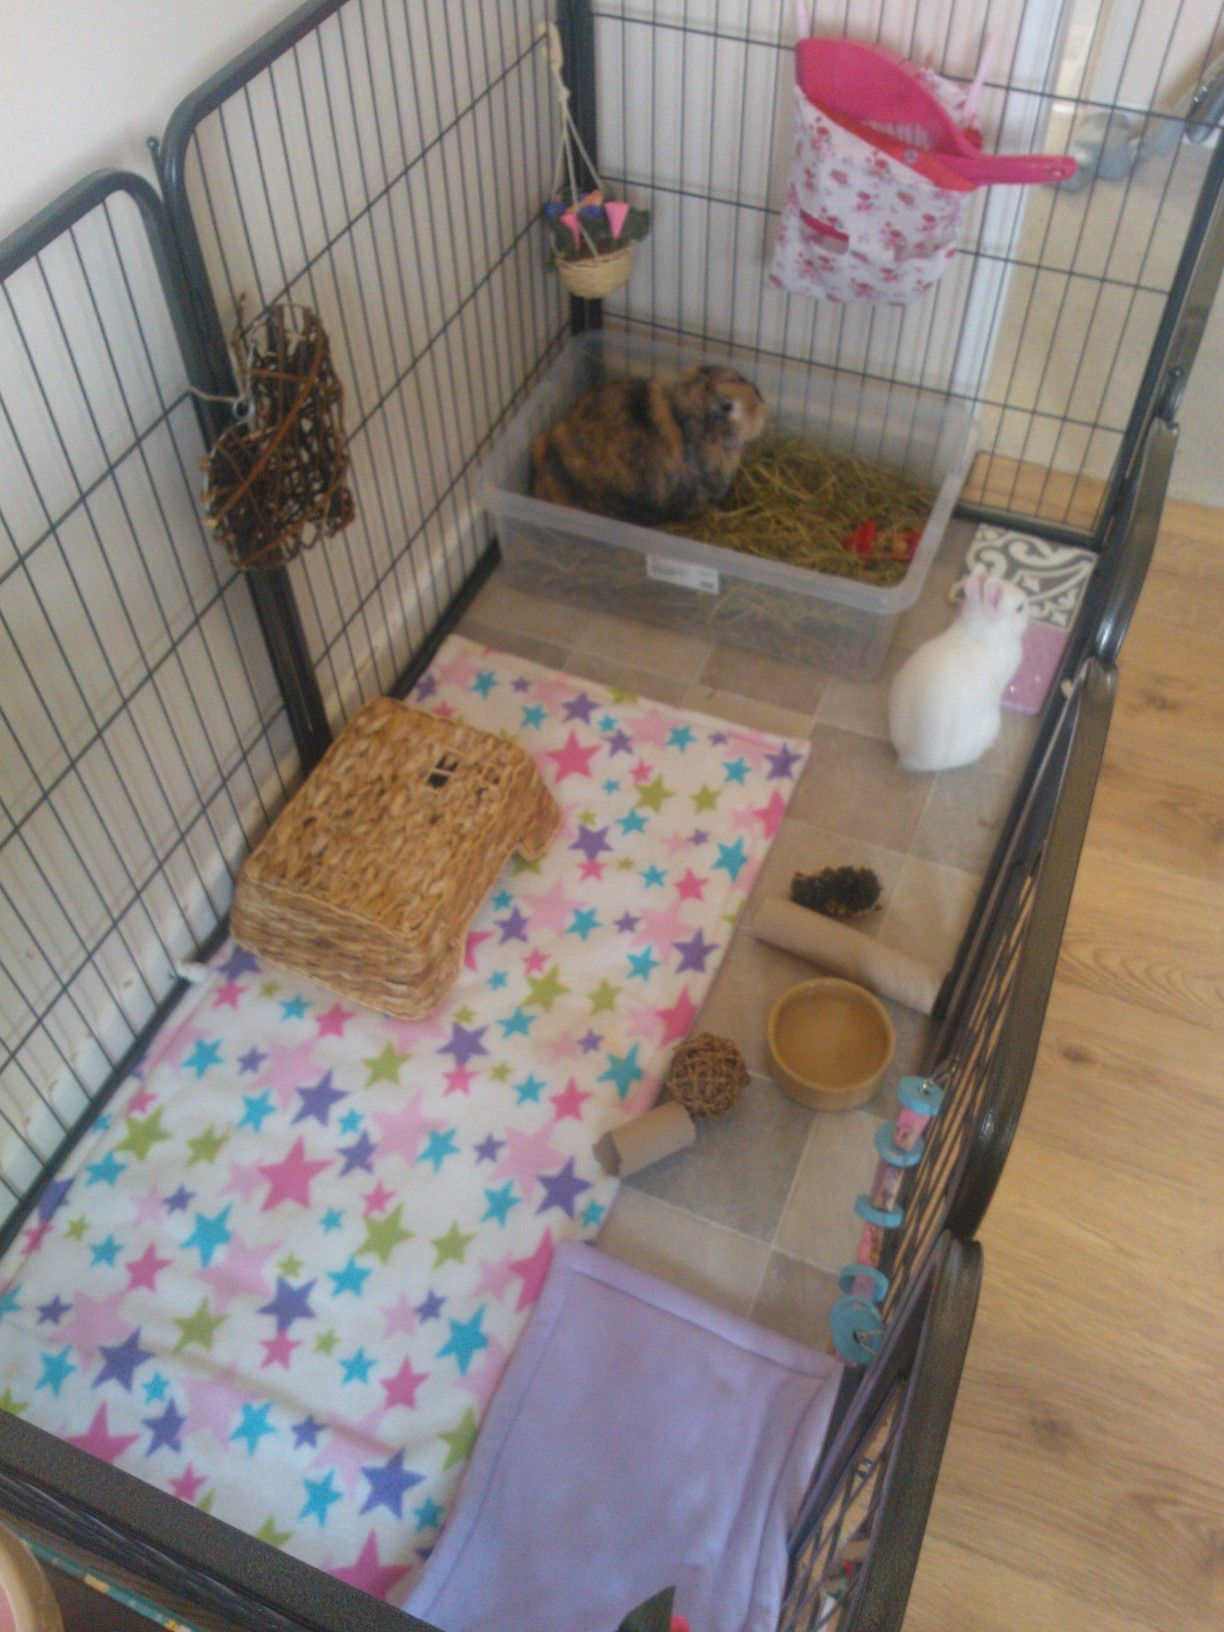 Neji Luna S Cage Indoor Rabbit Set Up Indoor Rabbit Diy